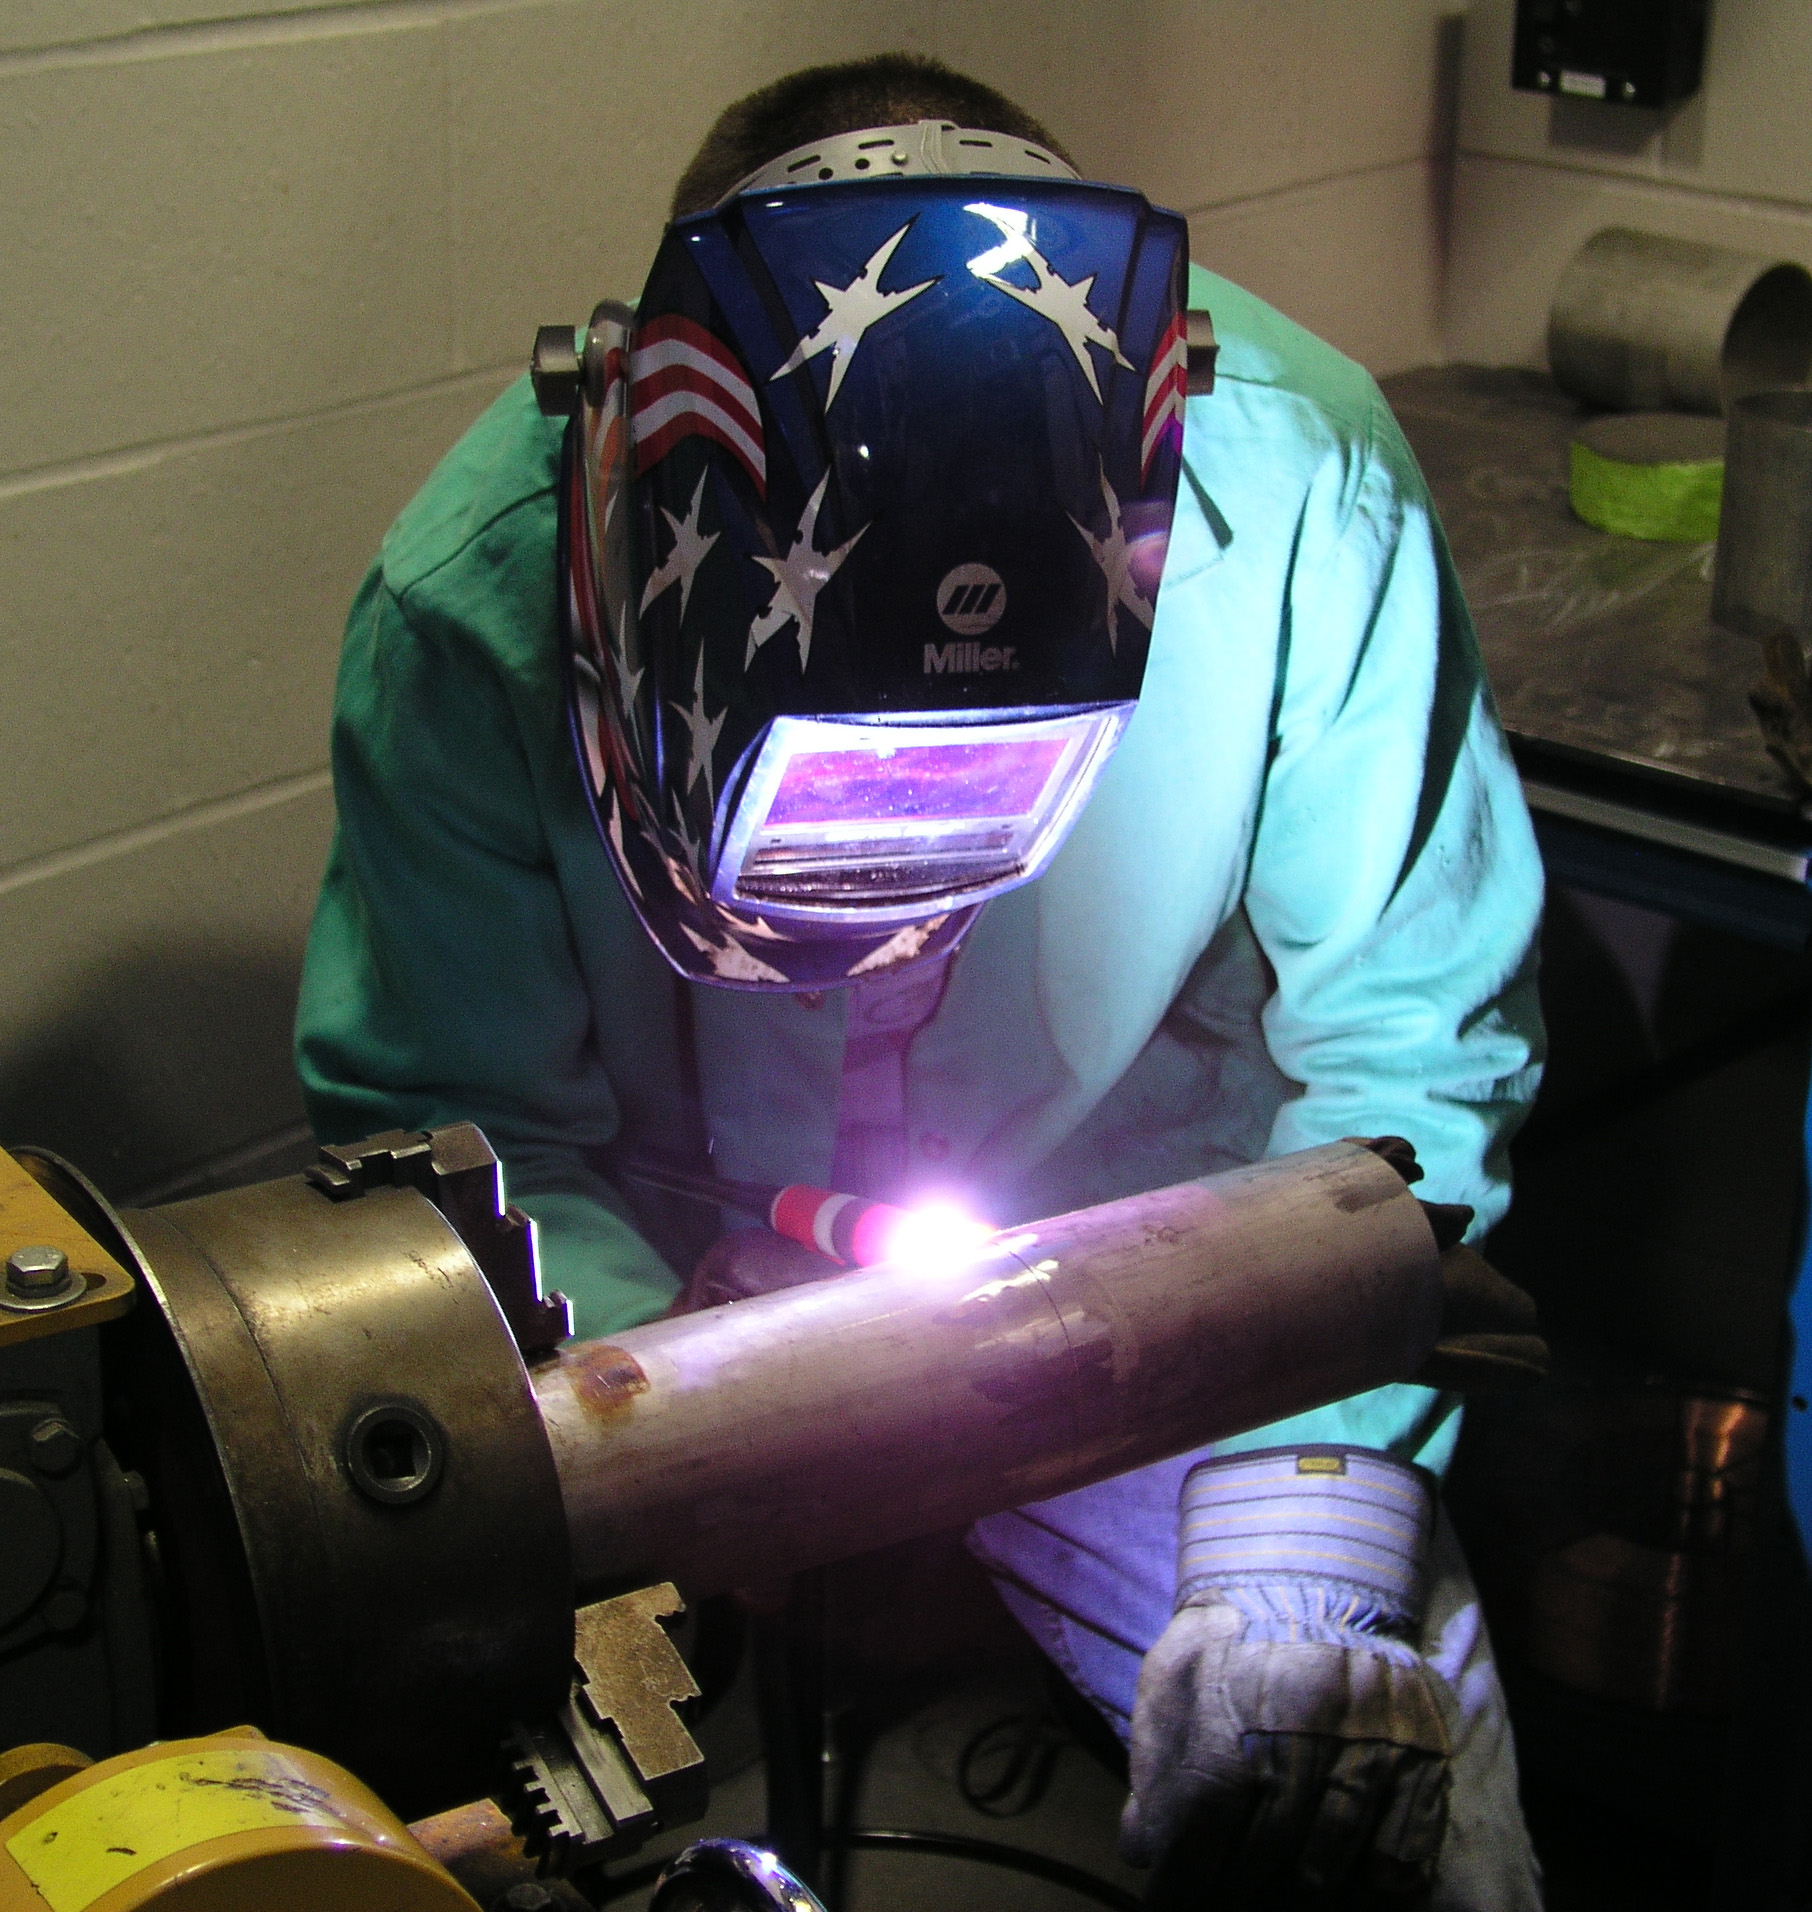 Secondary education and experience in welding can lead to a number of well-paying jobs, including welding engineers, Certified Welding Inspectors (CWI) and certified welders that can earn wages well above the median household income in the U.S. and, in some cases, as much as six figures each year.(Click on photo to enlarge it)